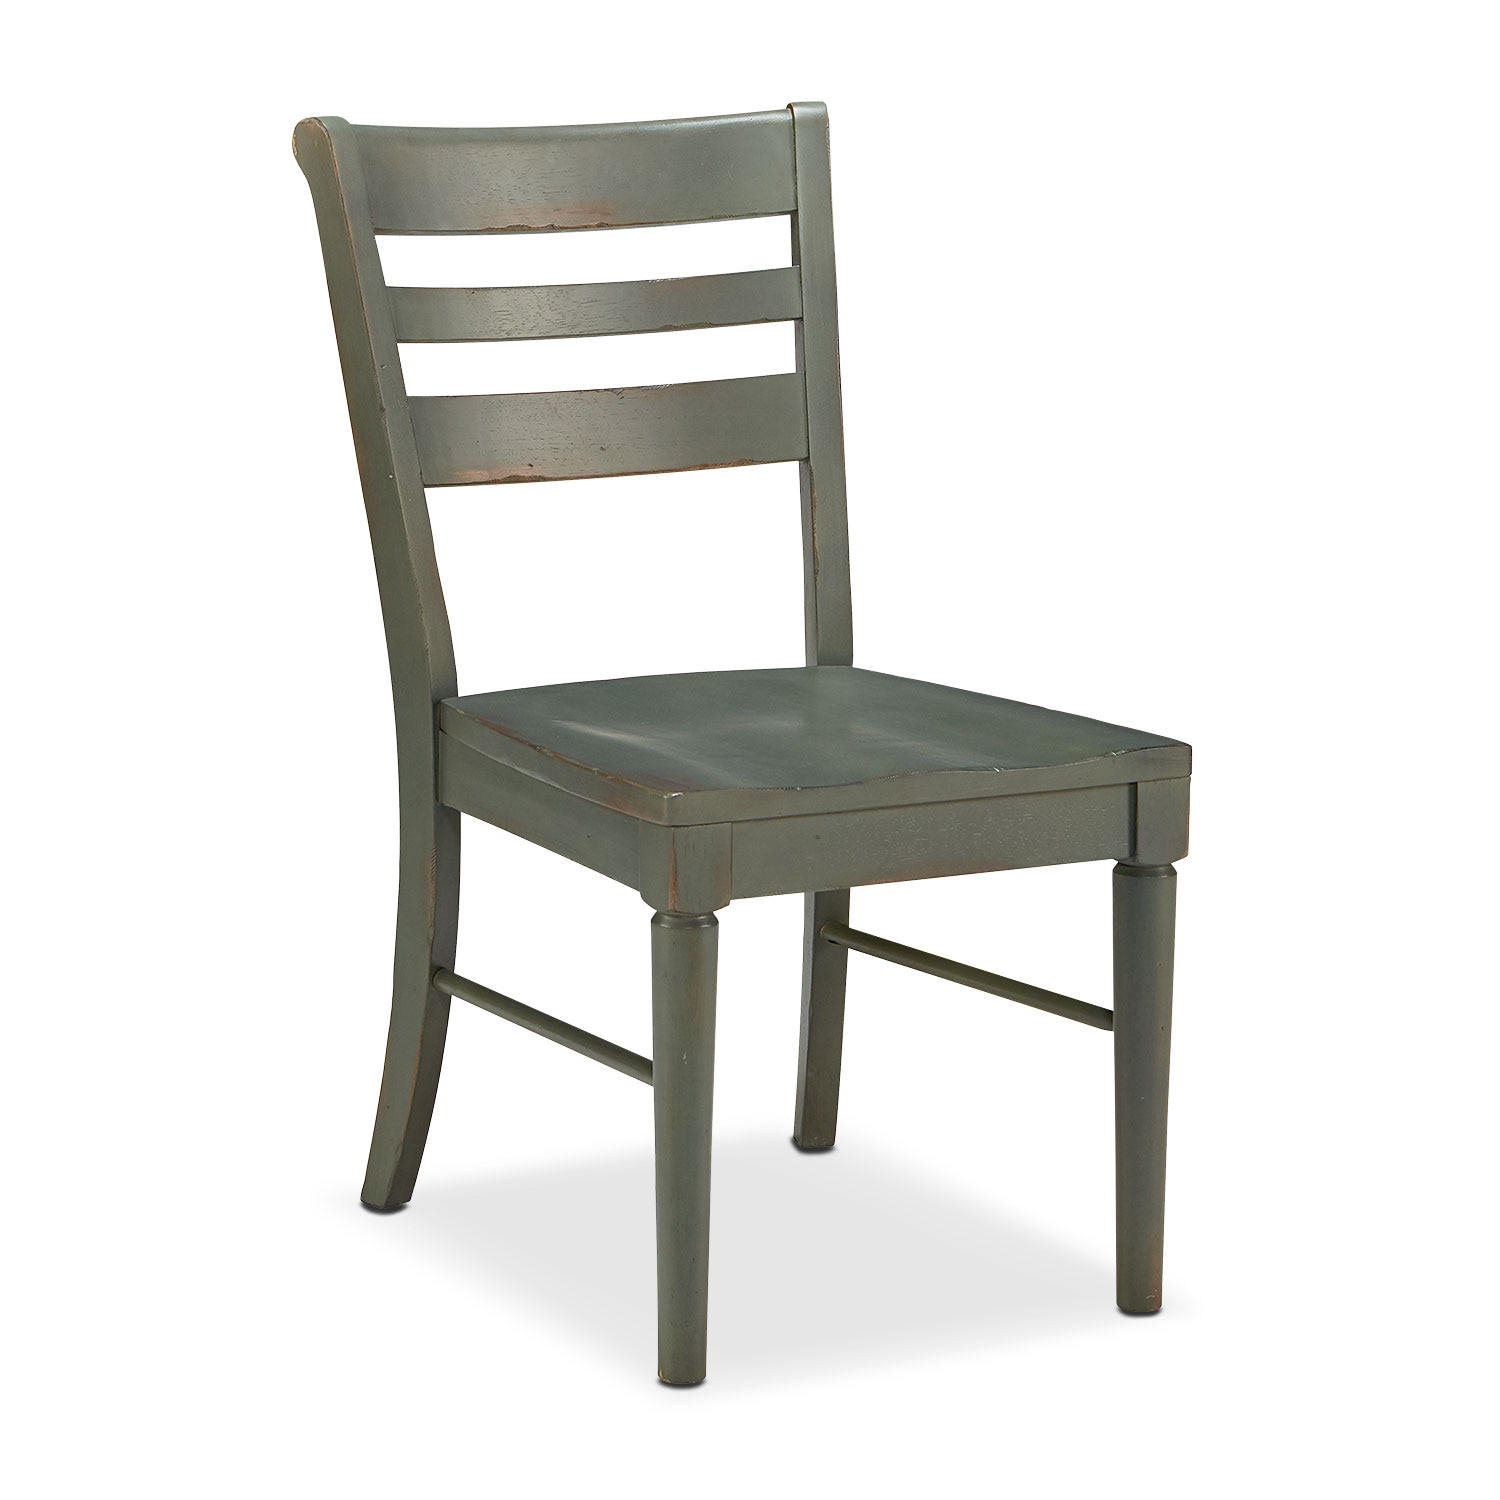 Kempton Slat Back Chair - Patina